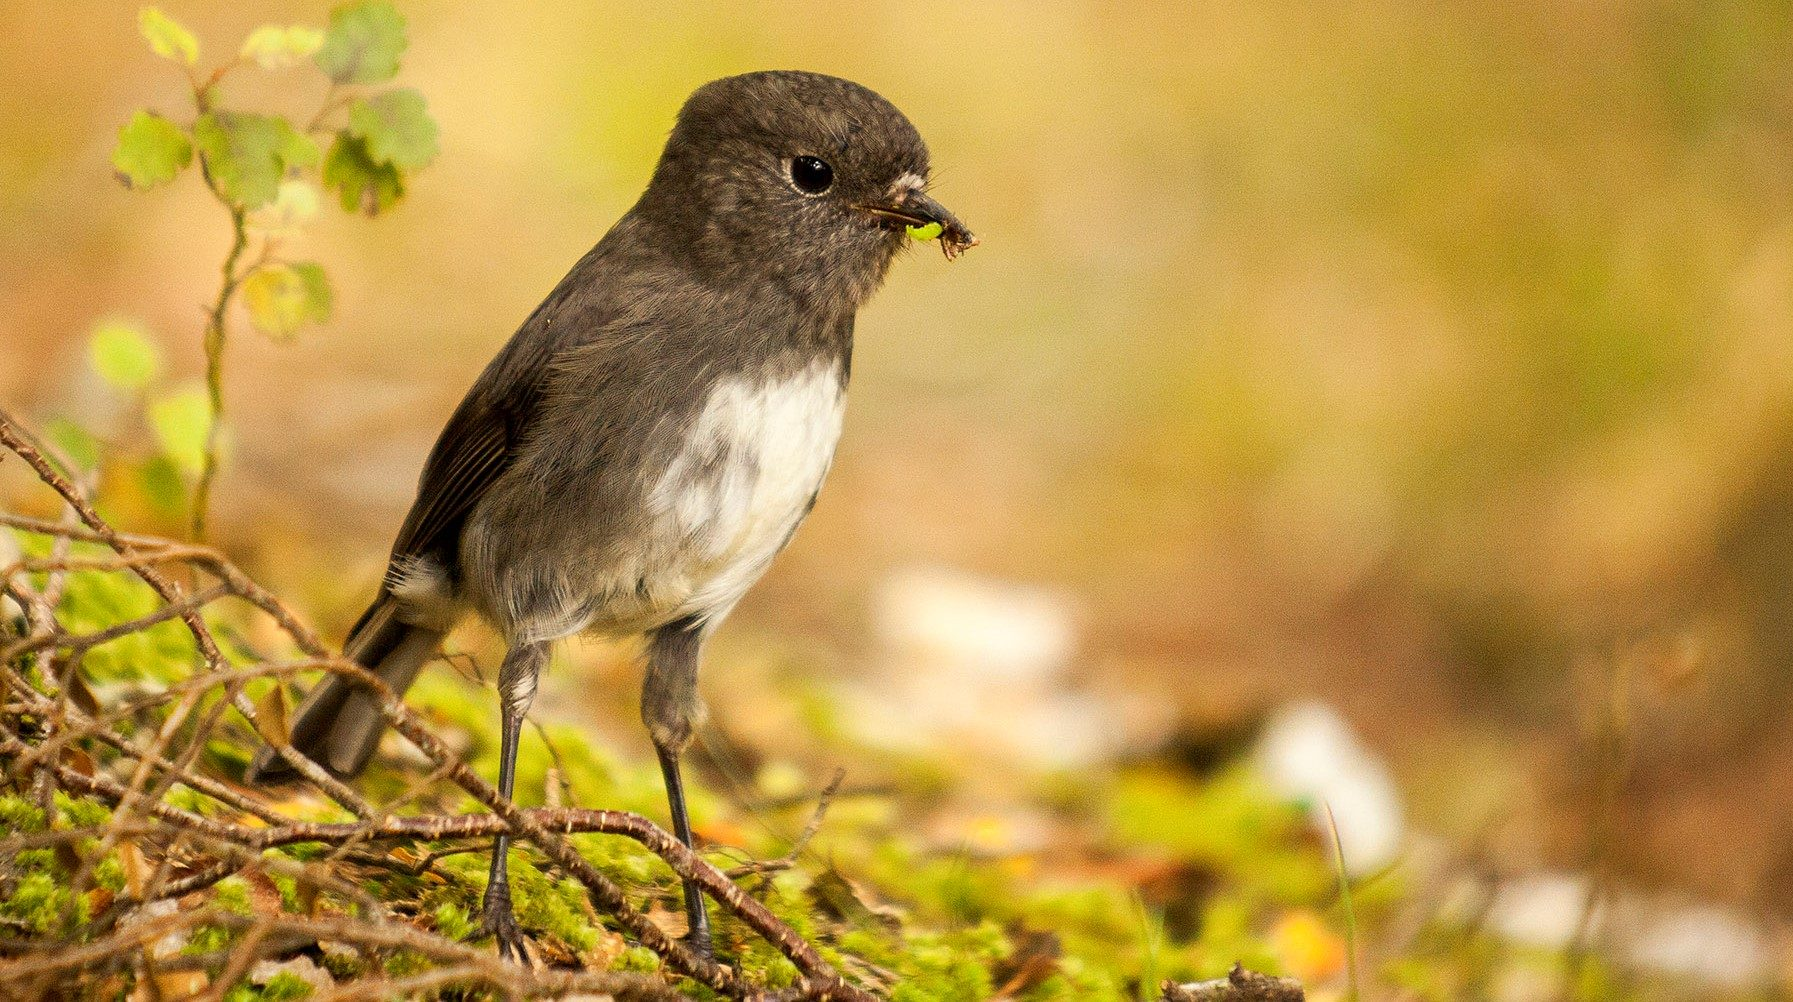 Small bird on the forest floor with an insect in its mouth